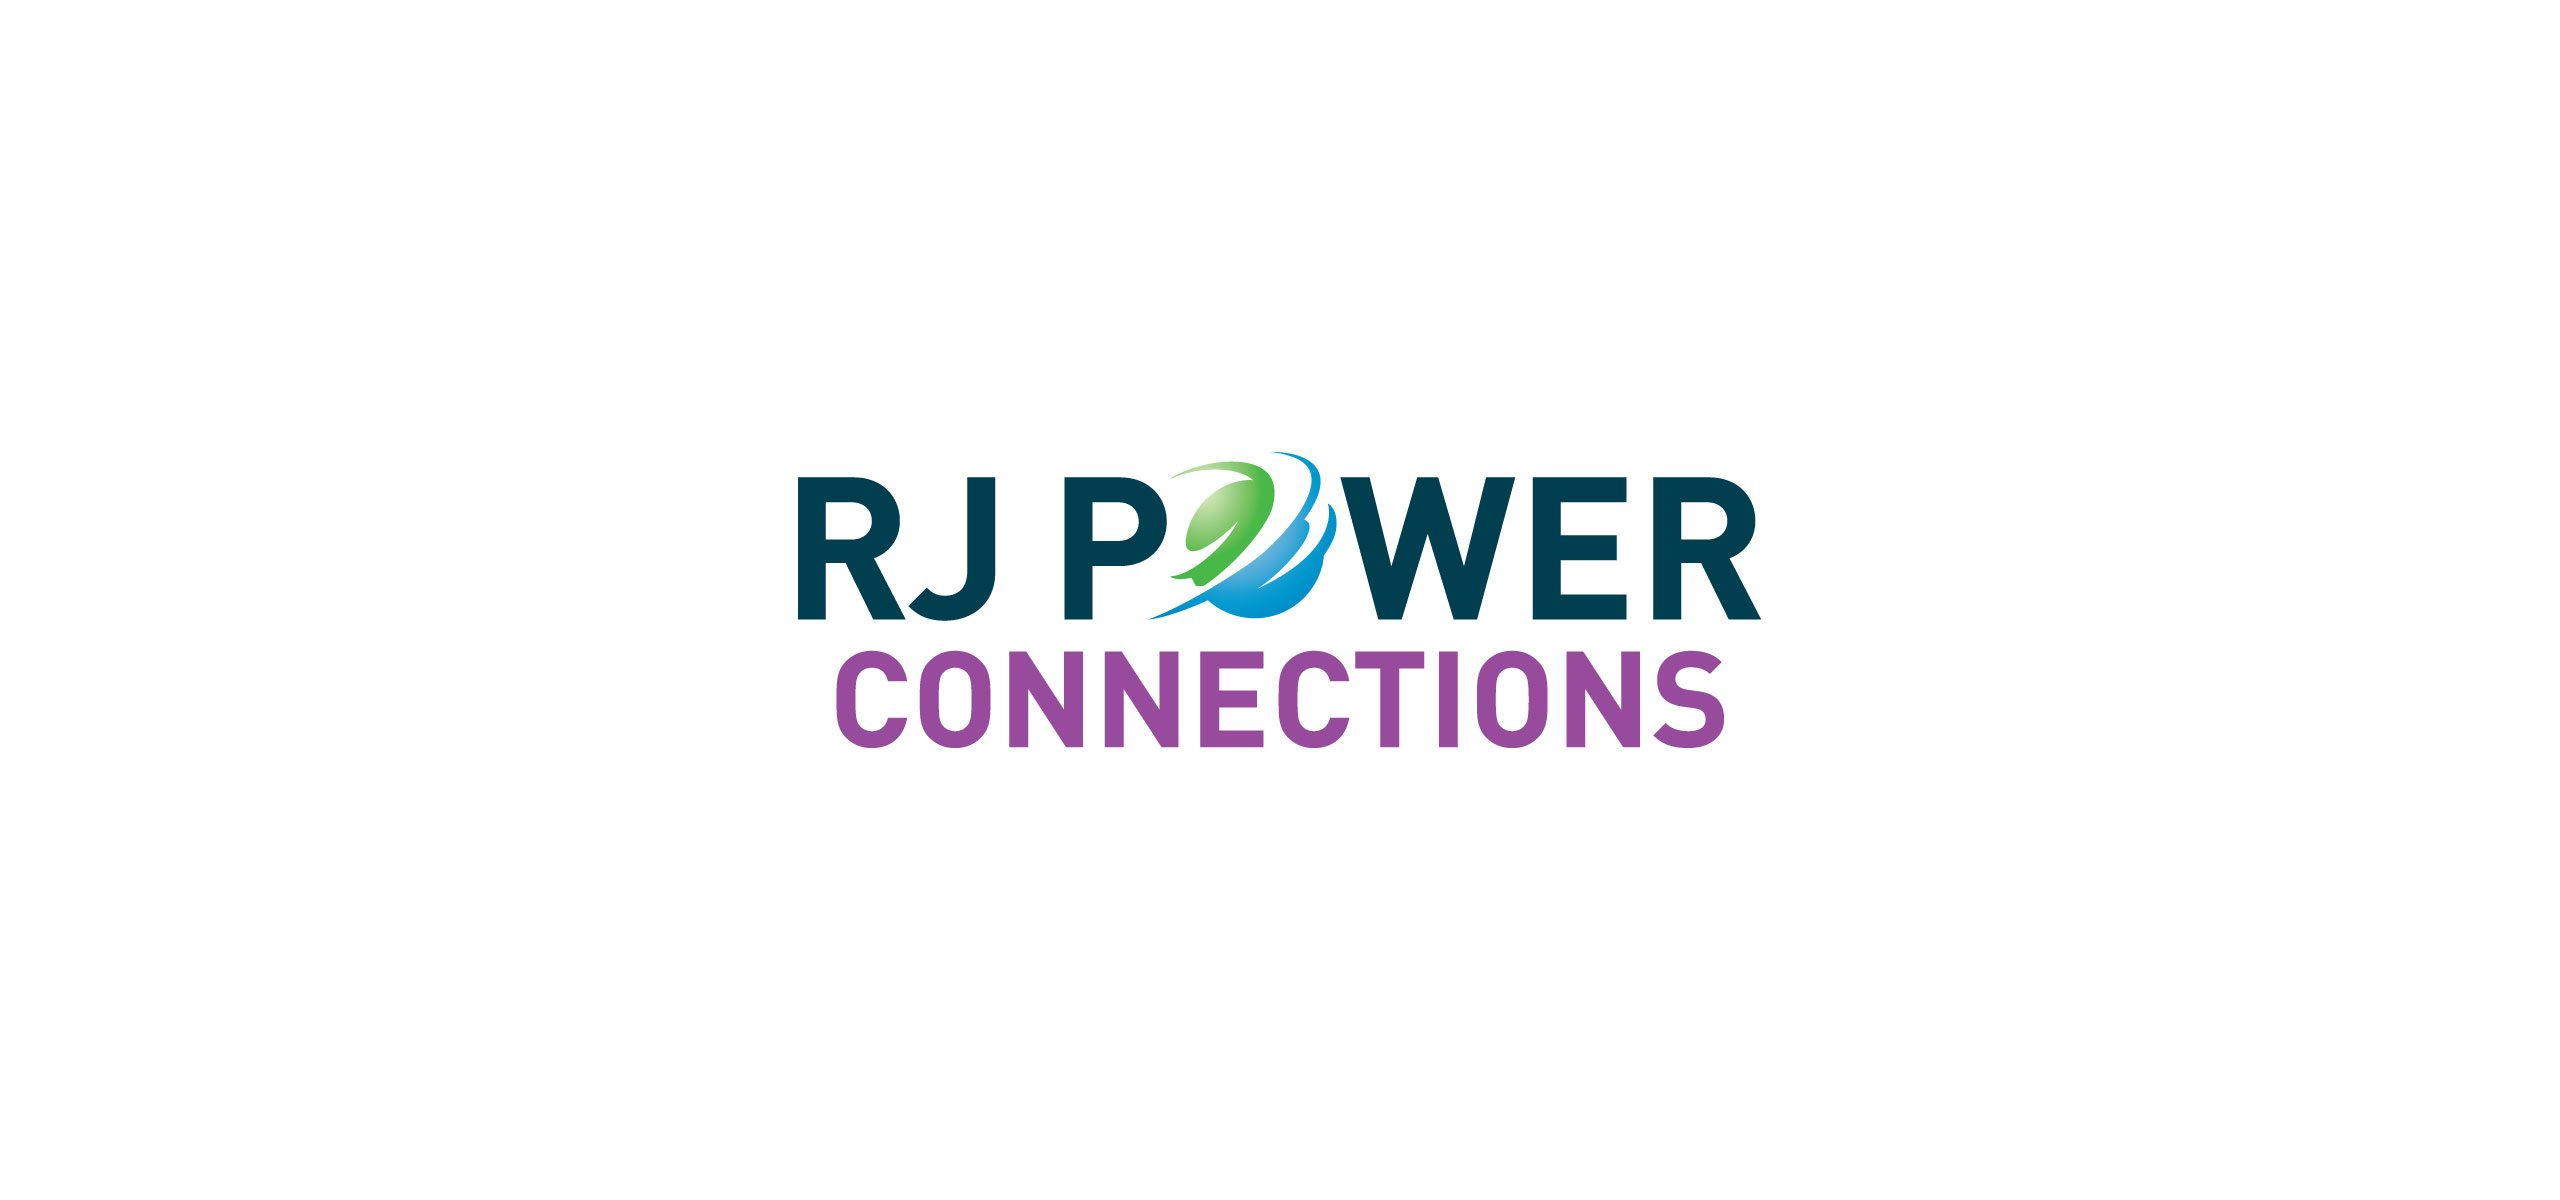 RJ Power Group of Companies launches new utility business RJ Power Connections Limited